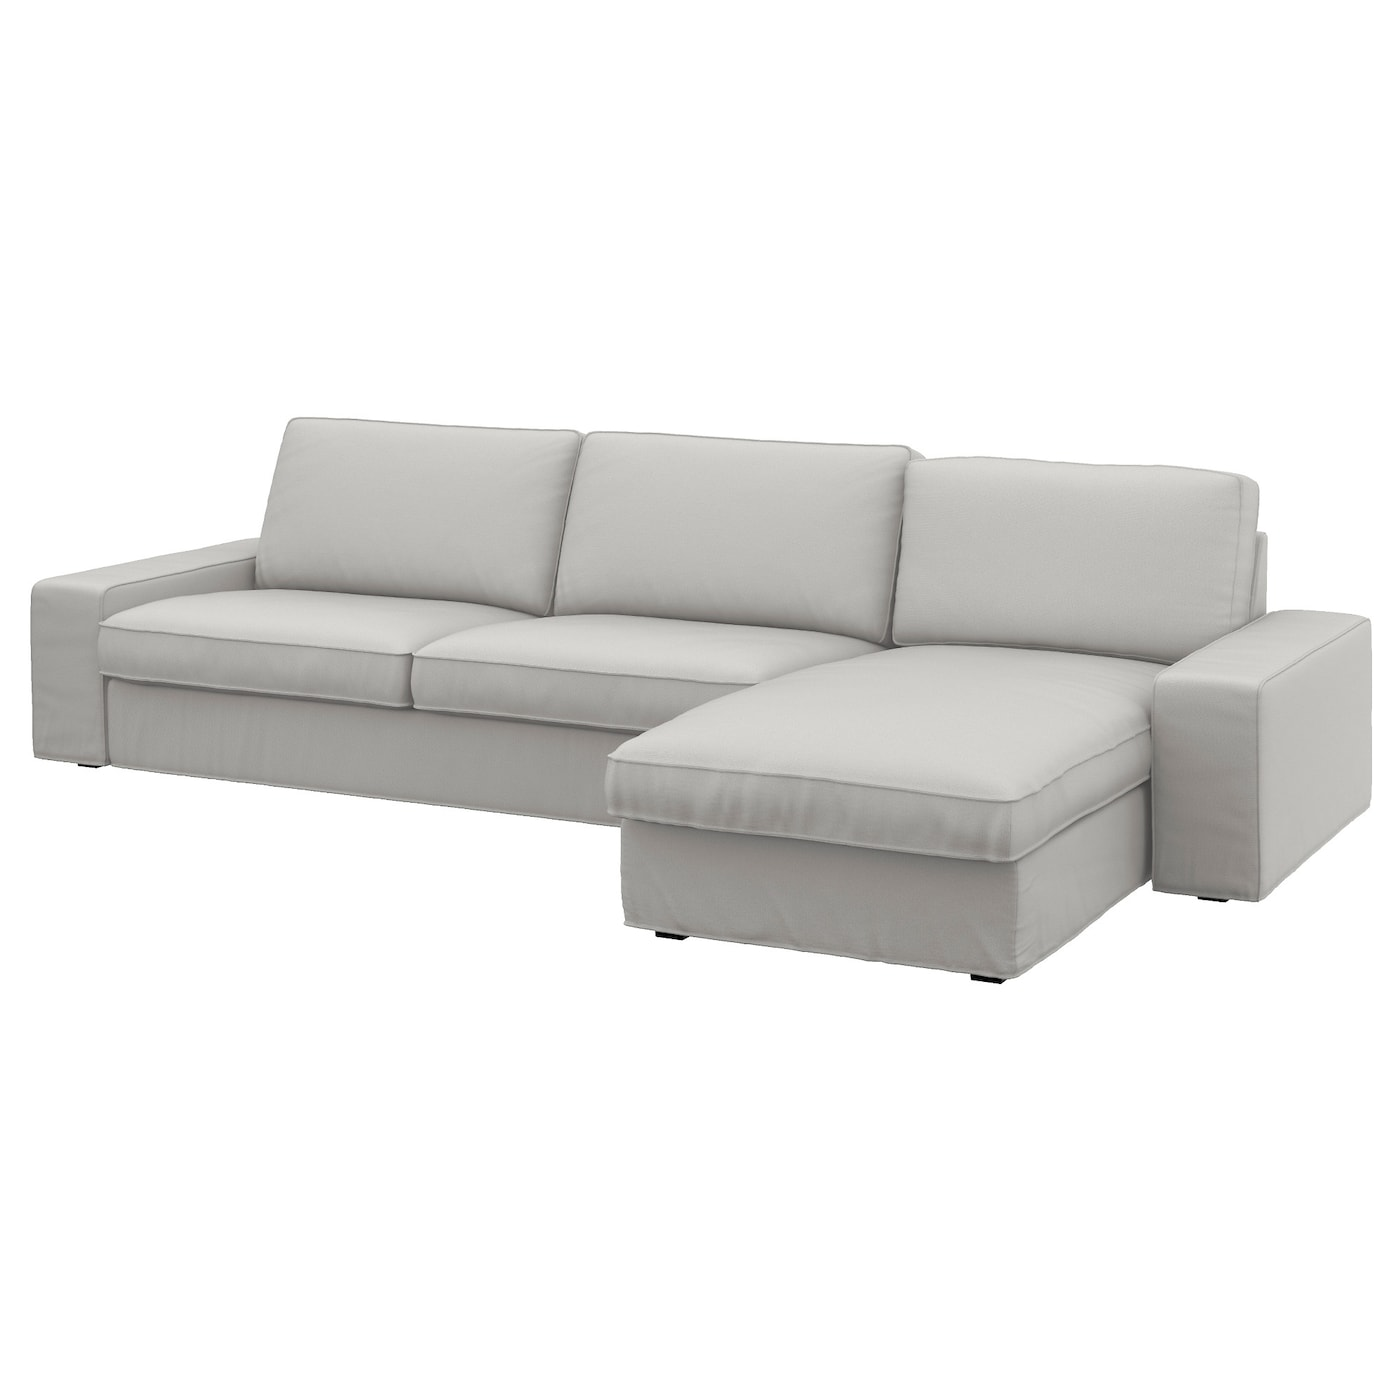 kivik 4 seat sofa with chaise longue ramna light grey ikea. Black Bedroom Furniture Sets. Home Design Ideas